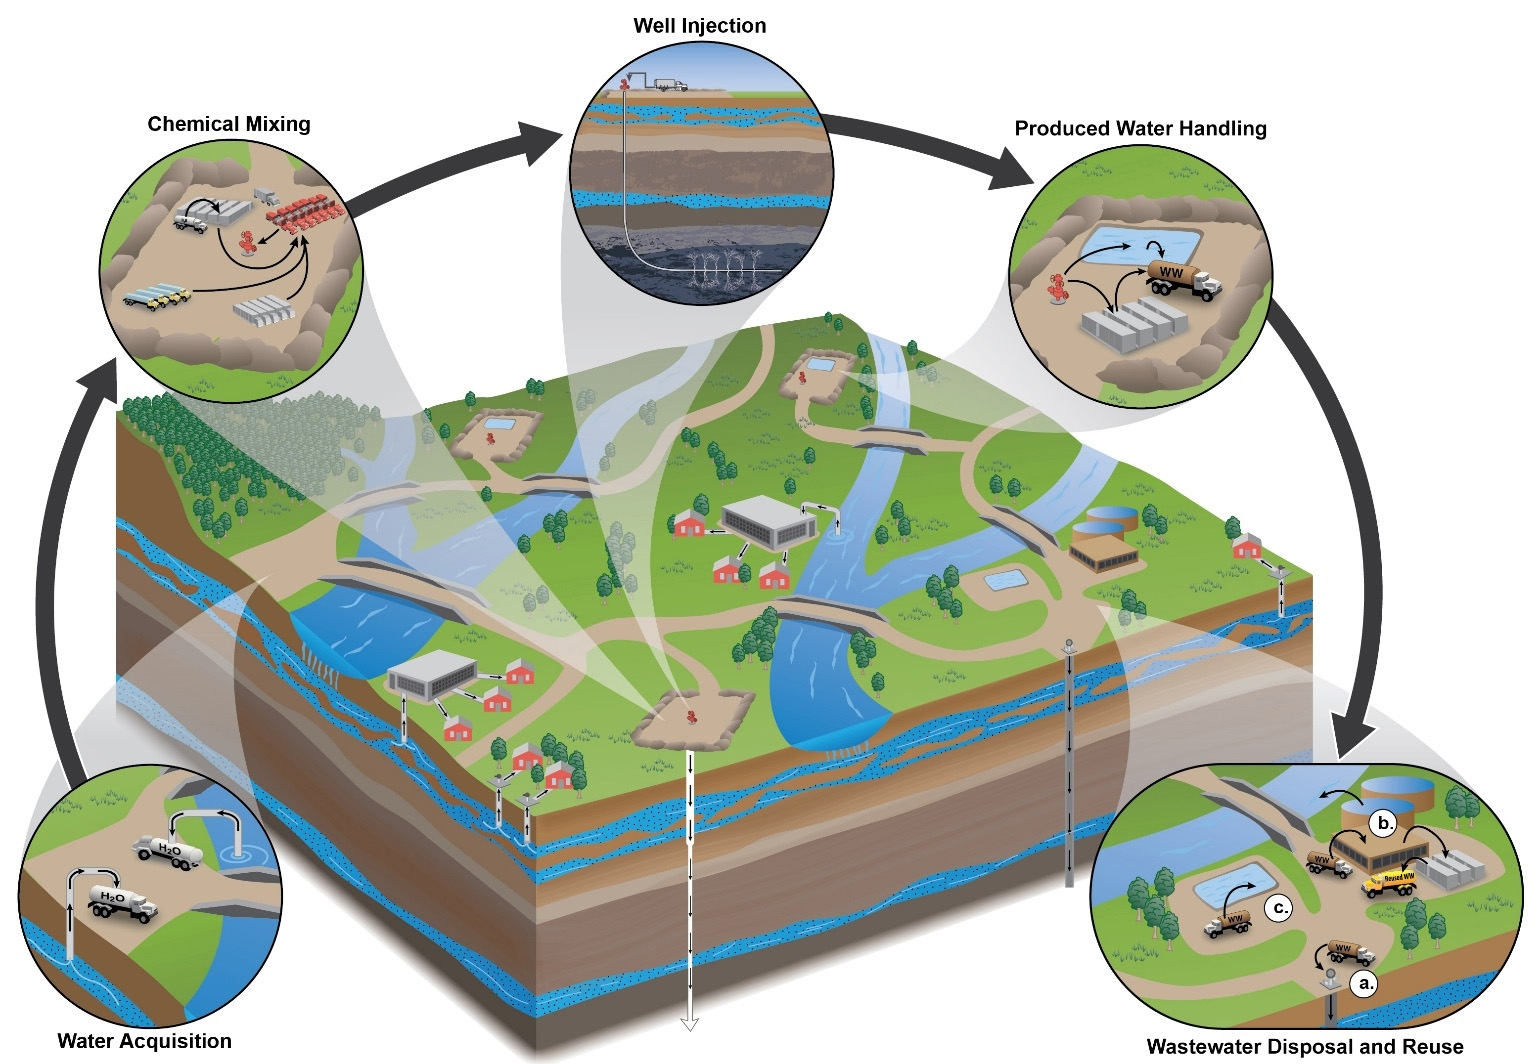 fracking2water_cycle_final_assessment2HighRes.jpg